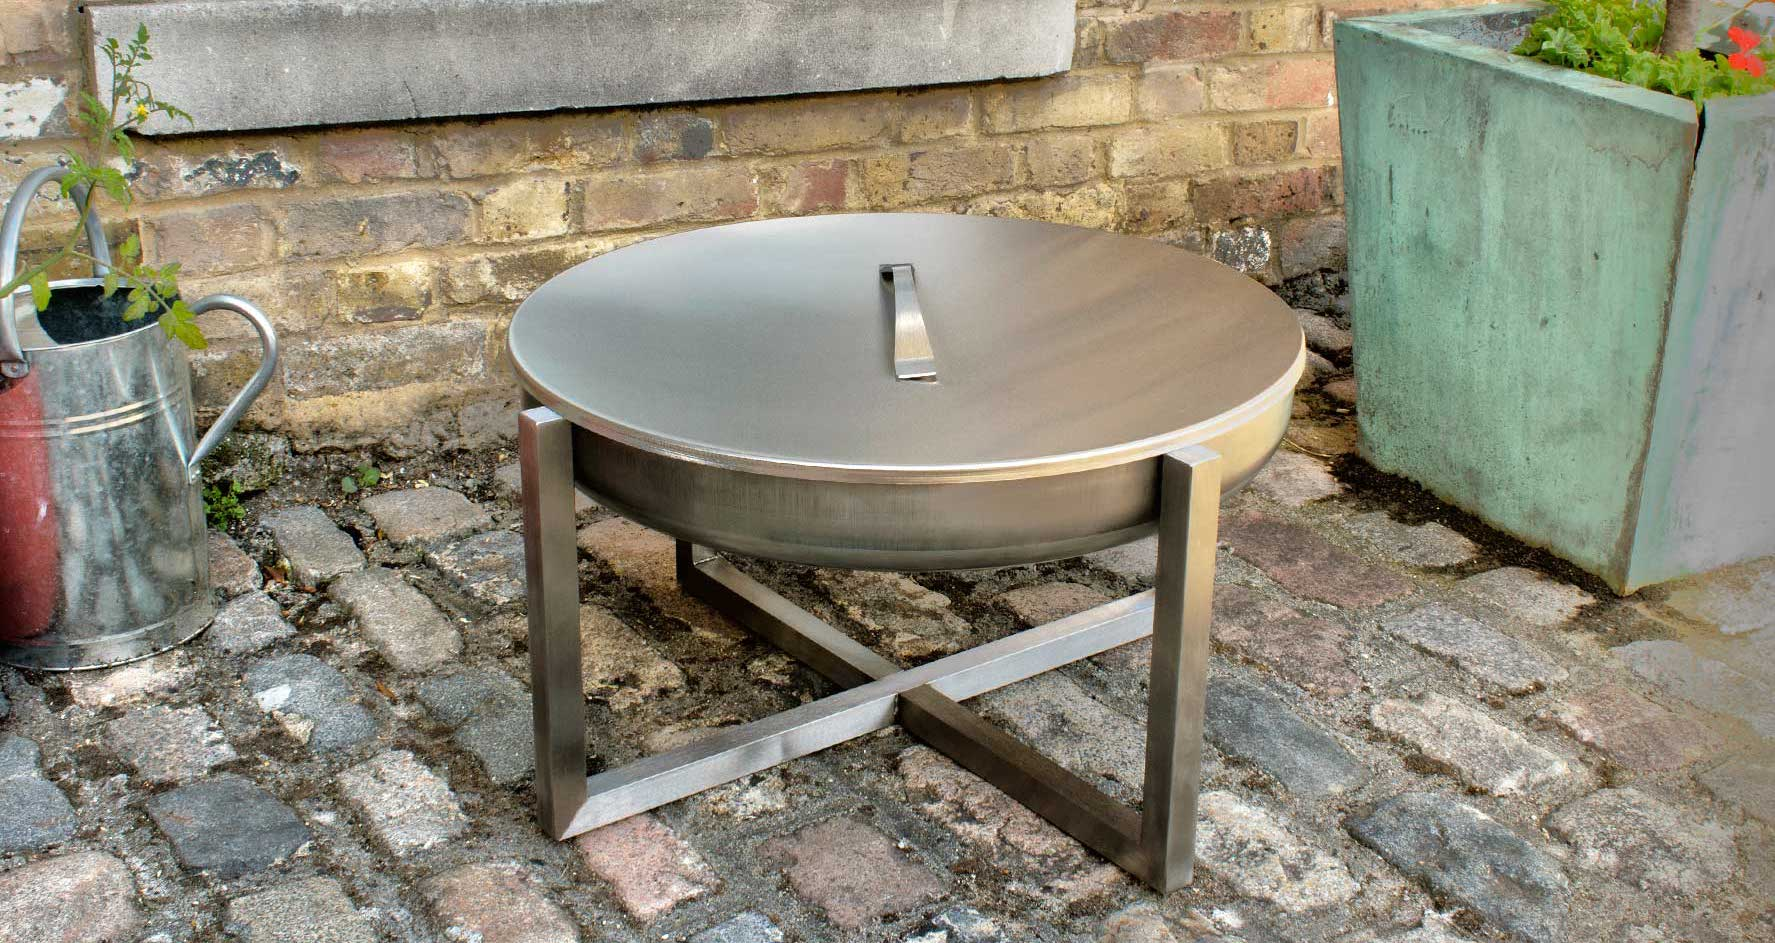 covered stainless Quadra fire pit